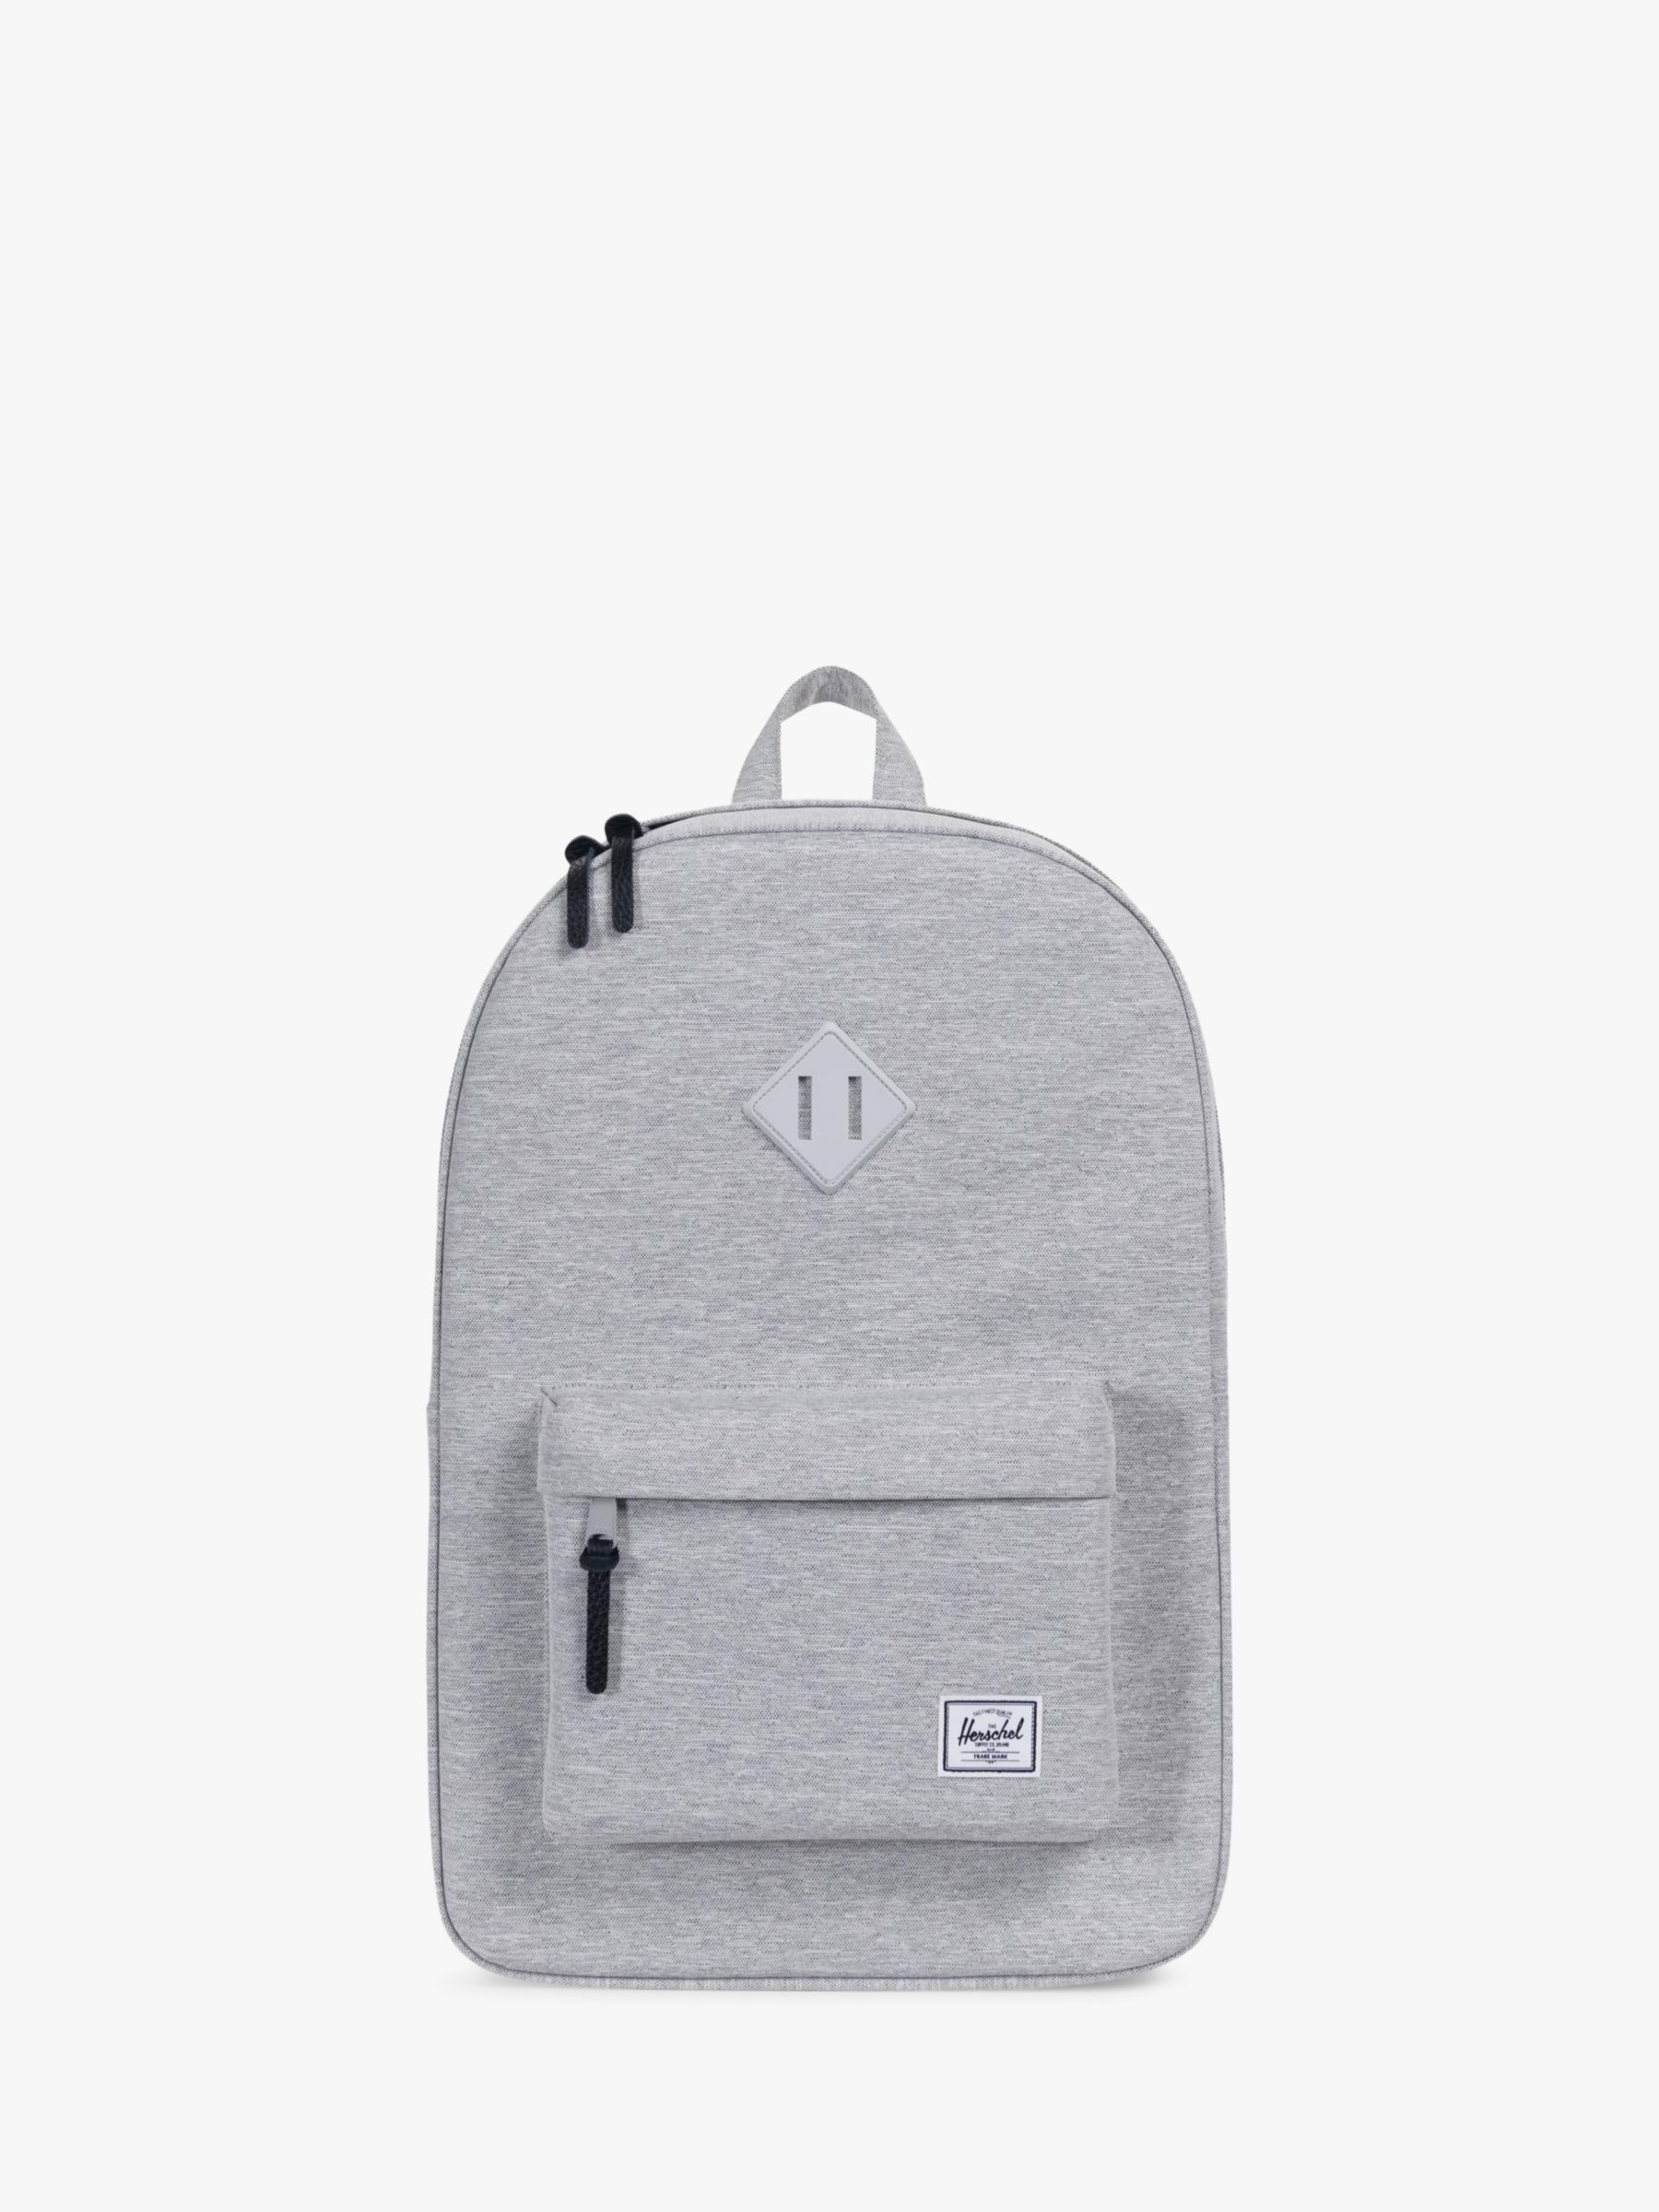 Herschel Supply Co. Herschel Supply Co. Heritage Backpack, Light Grey Crosshatch